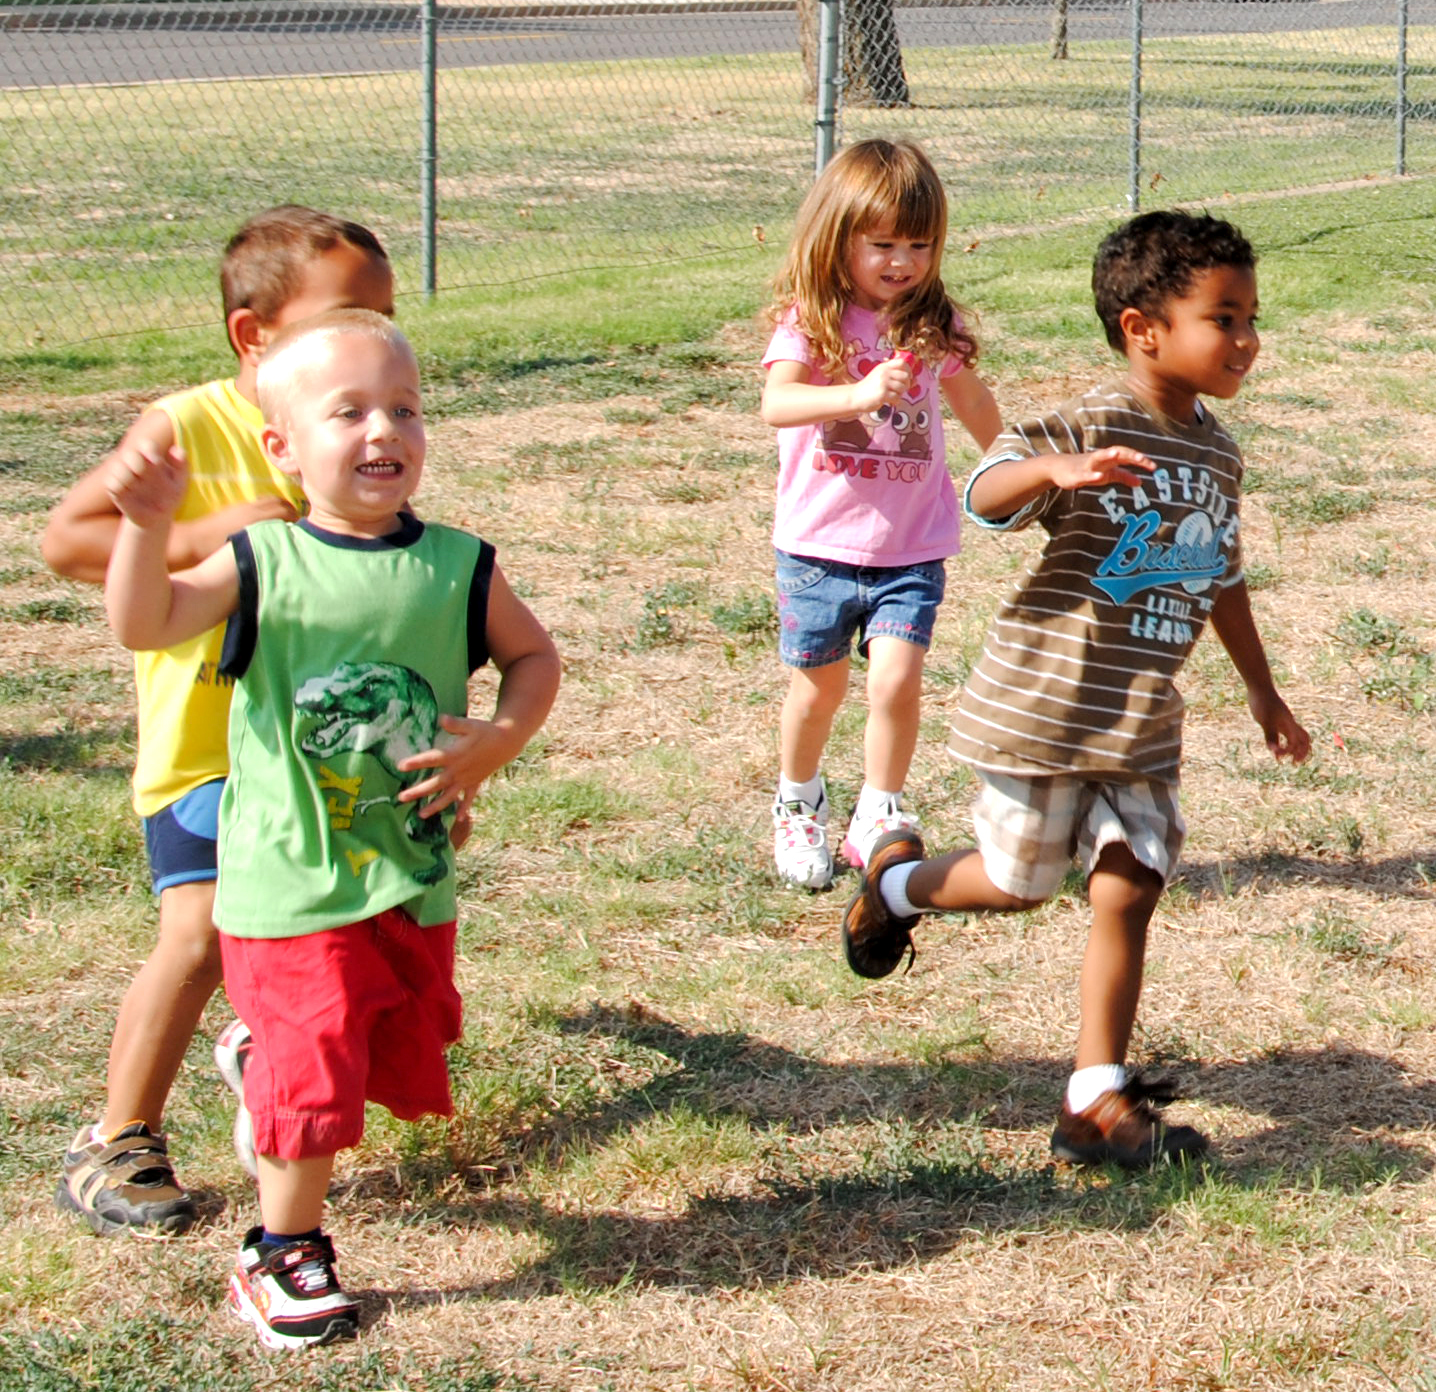 Time outsider to run and play gives focus in the classroom.